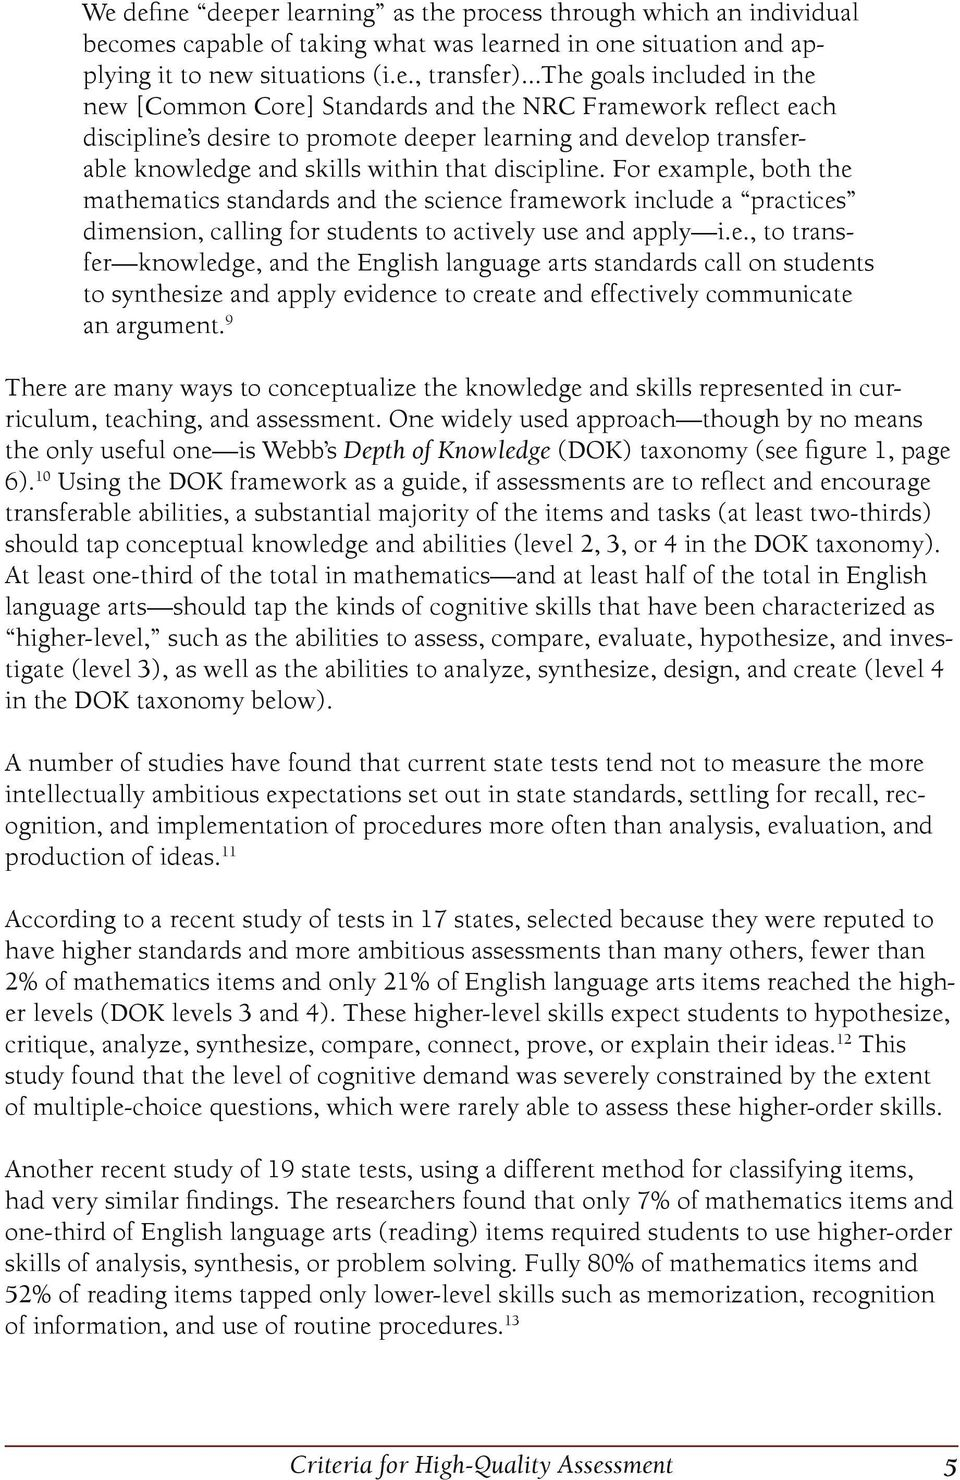 discipline. For example, both the mathematics standards and the science framework include a practices dimension, calling for students to actively use and apply i.e., to transfer knowledge, and the English language arts standards call on students to synthesize and apply evidence to create and effectively communicate an argument.